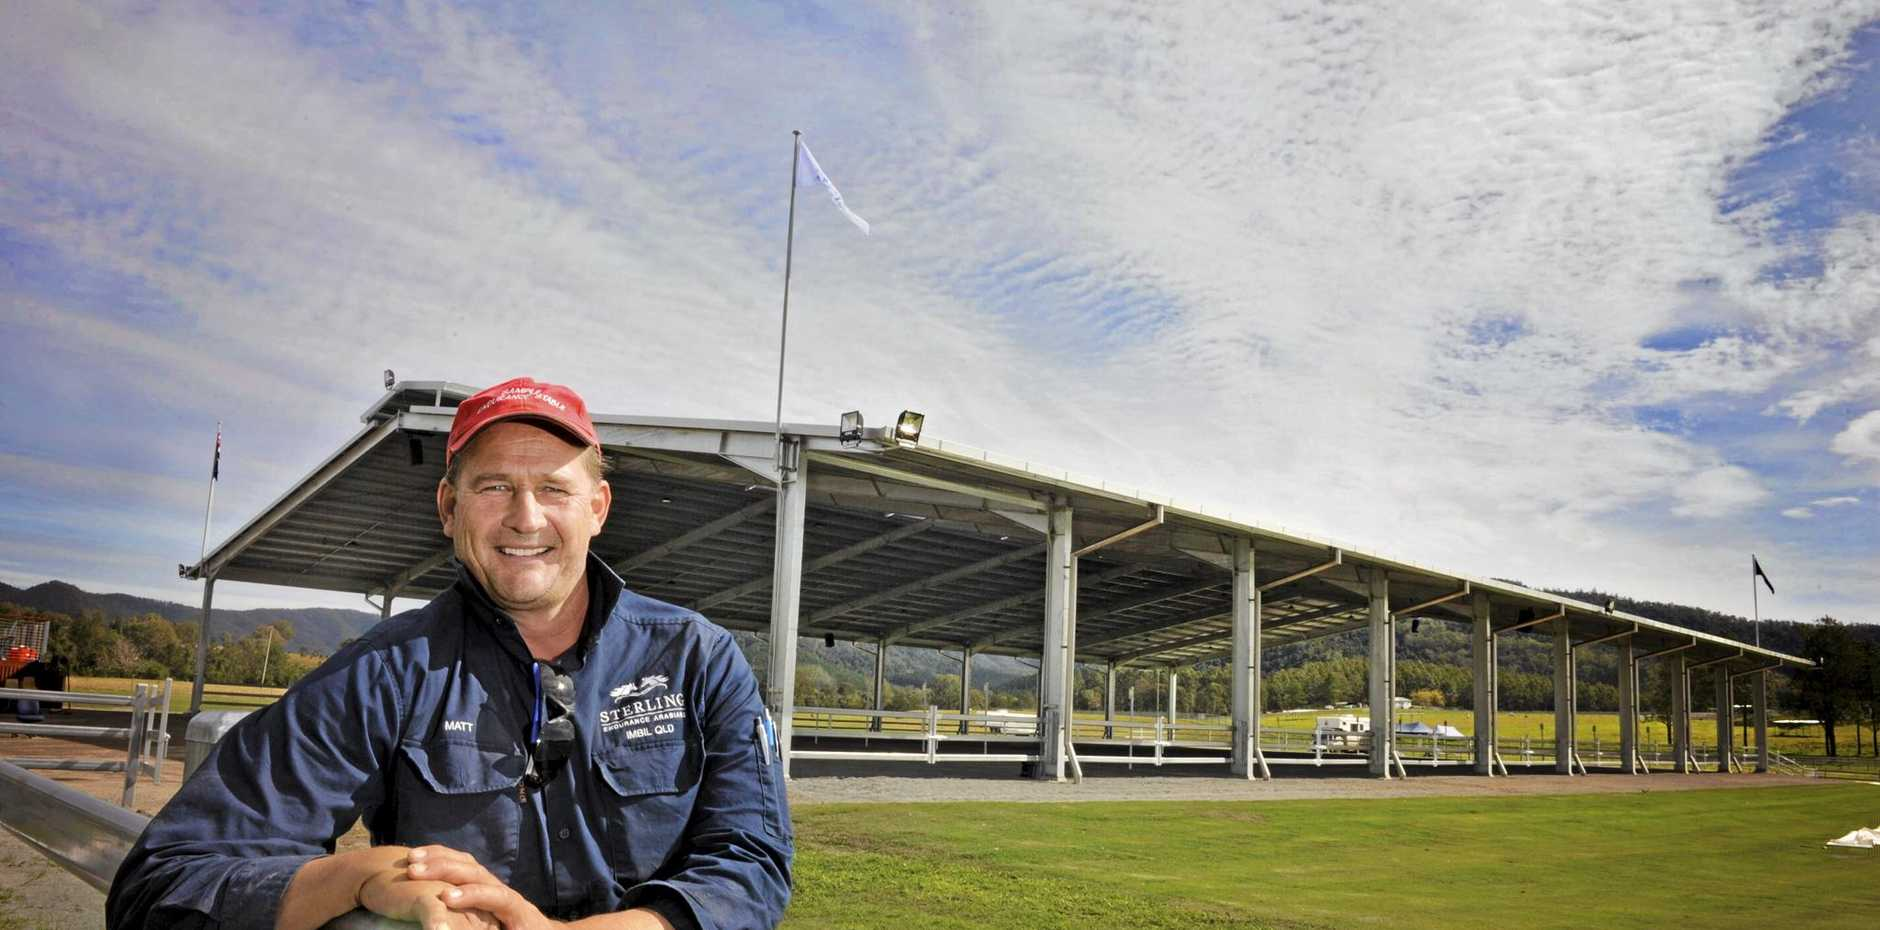 BIG PLANS: This weekend's internationally accredited endurance horse ride in the Imbil-Kenilworth forest is just a sample of the future, says Matthew Sample.